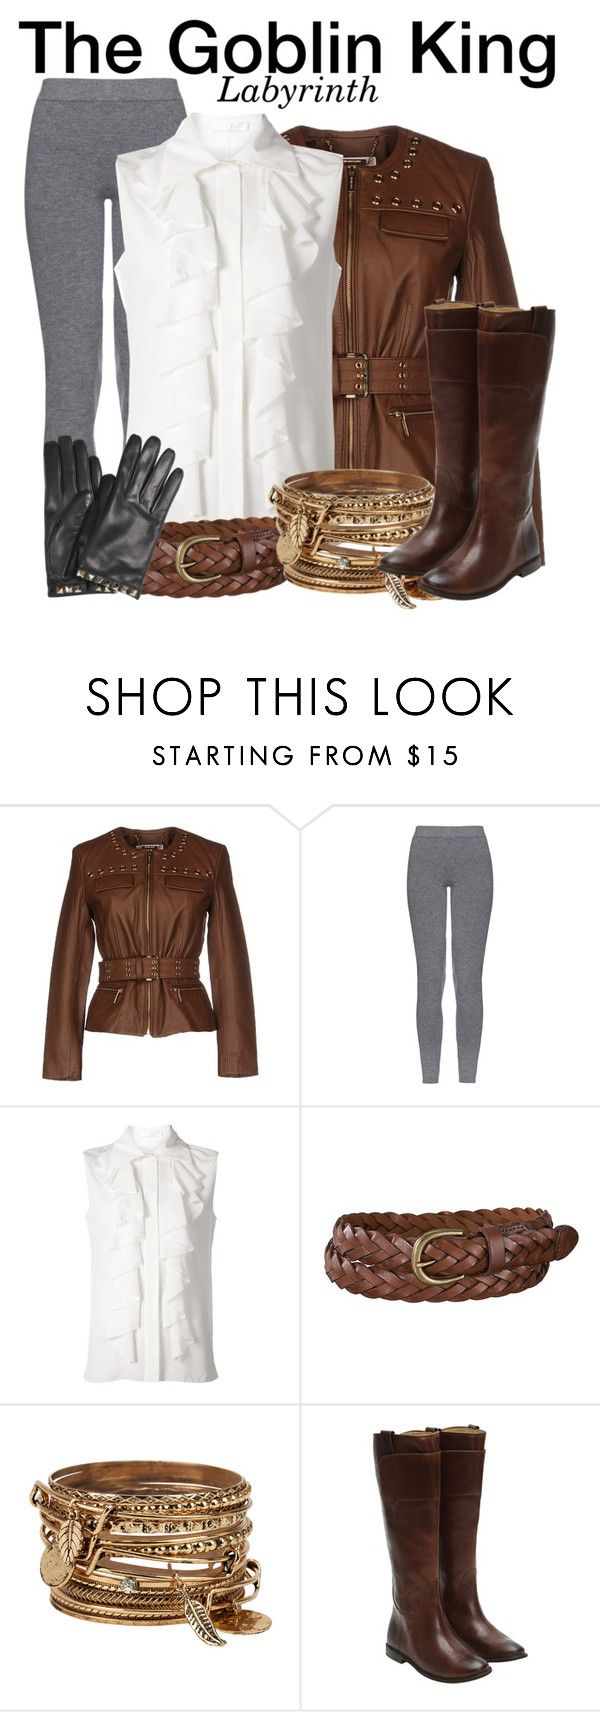 """""""The Goblin King - Labyrinth"""" by nerd-ville ❤ liked on Polyvore featuring MICHAEL Michael Kors, MaxMara, Chloé, Uniqlo, ALDO, Frye, Valentino, women's clothing, women's fashion and women"""